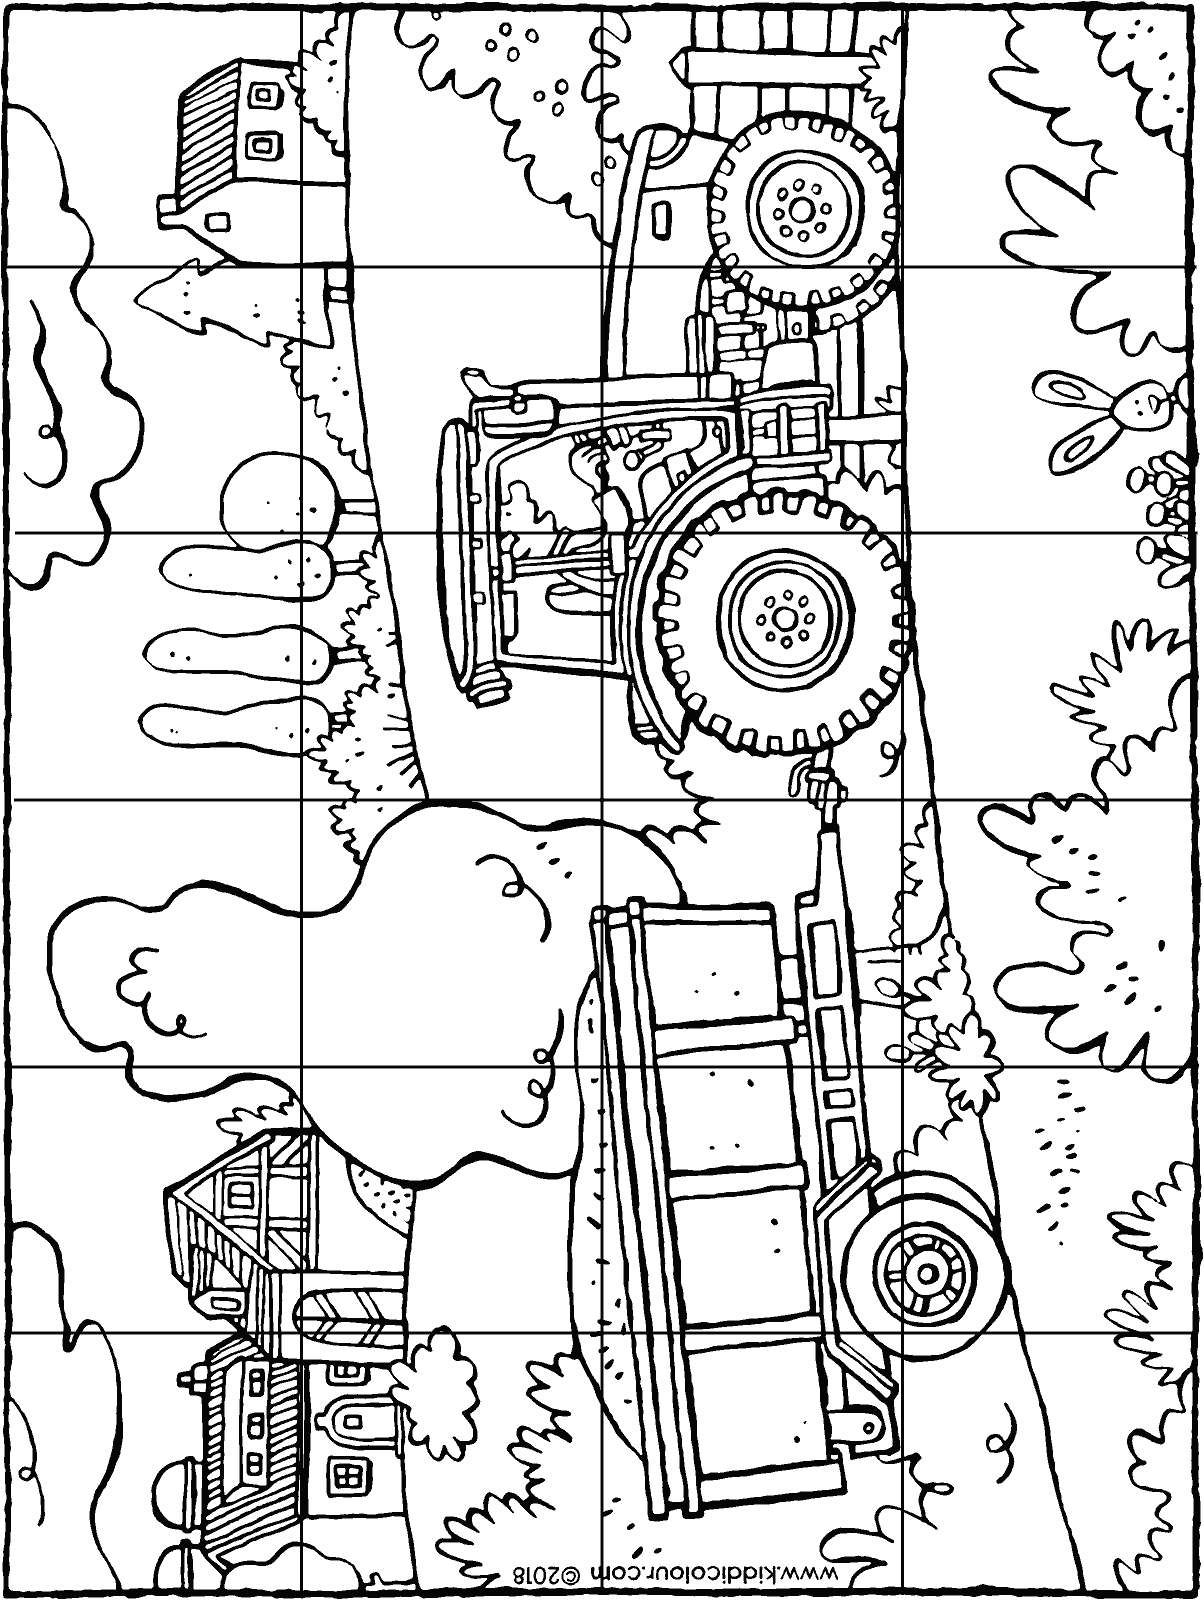 tractor and trailer puzzle colouring page drawing picture 01H